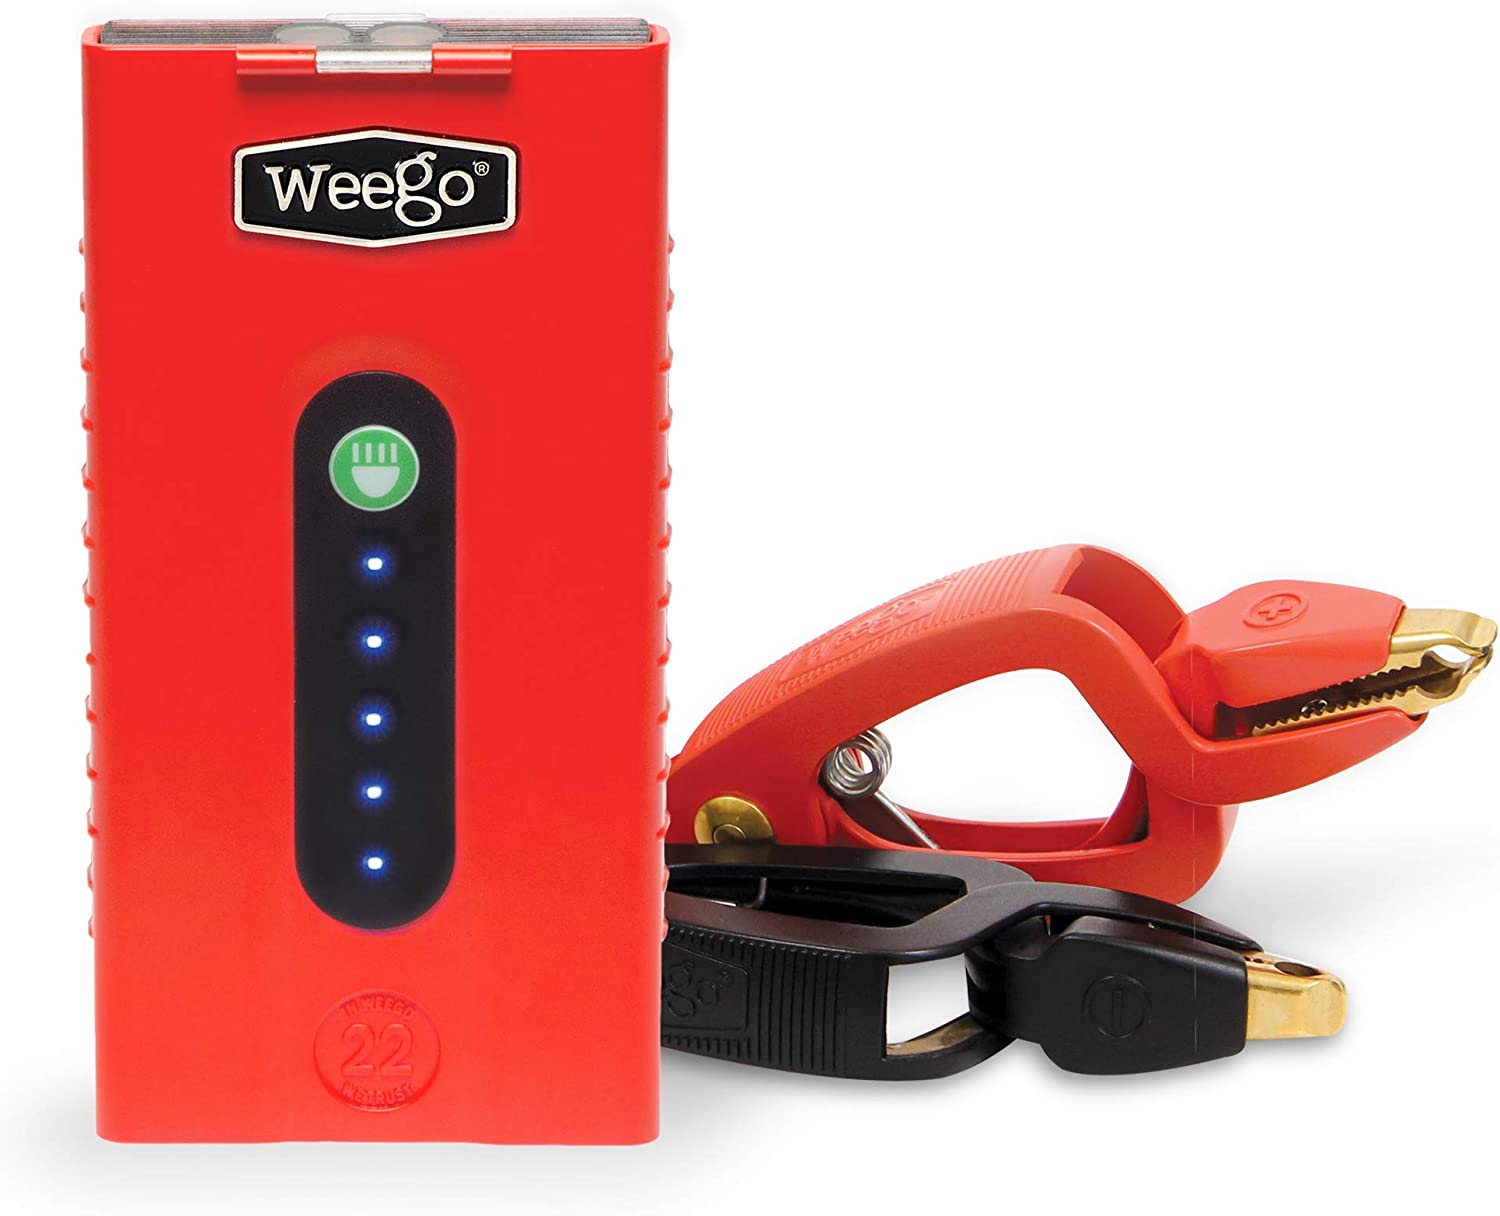 Weego 22 Jump Starting Power Pack 1700 Peak 300 Cranking Amps High Performance Lithium Ion Jump Starter Quick Charges Phones 250 Lumen LED Flashlight Water Resistant USA Designed and Engineered